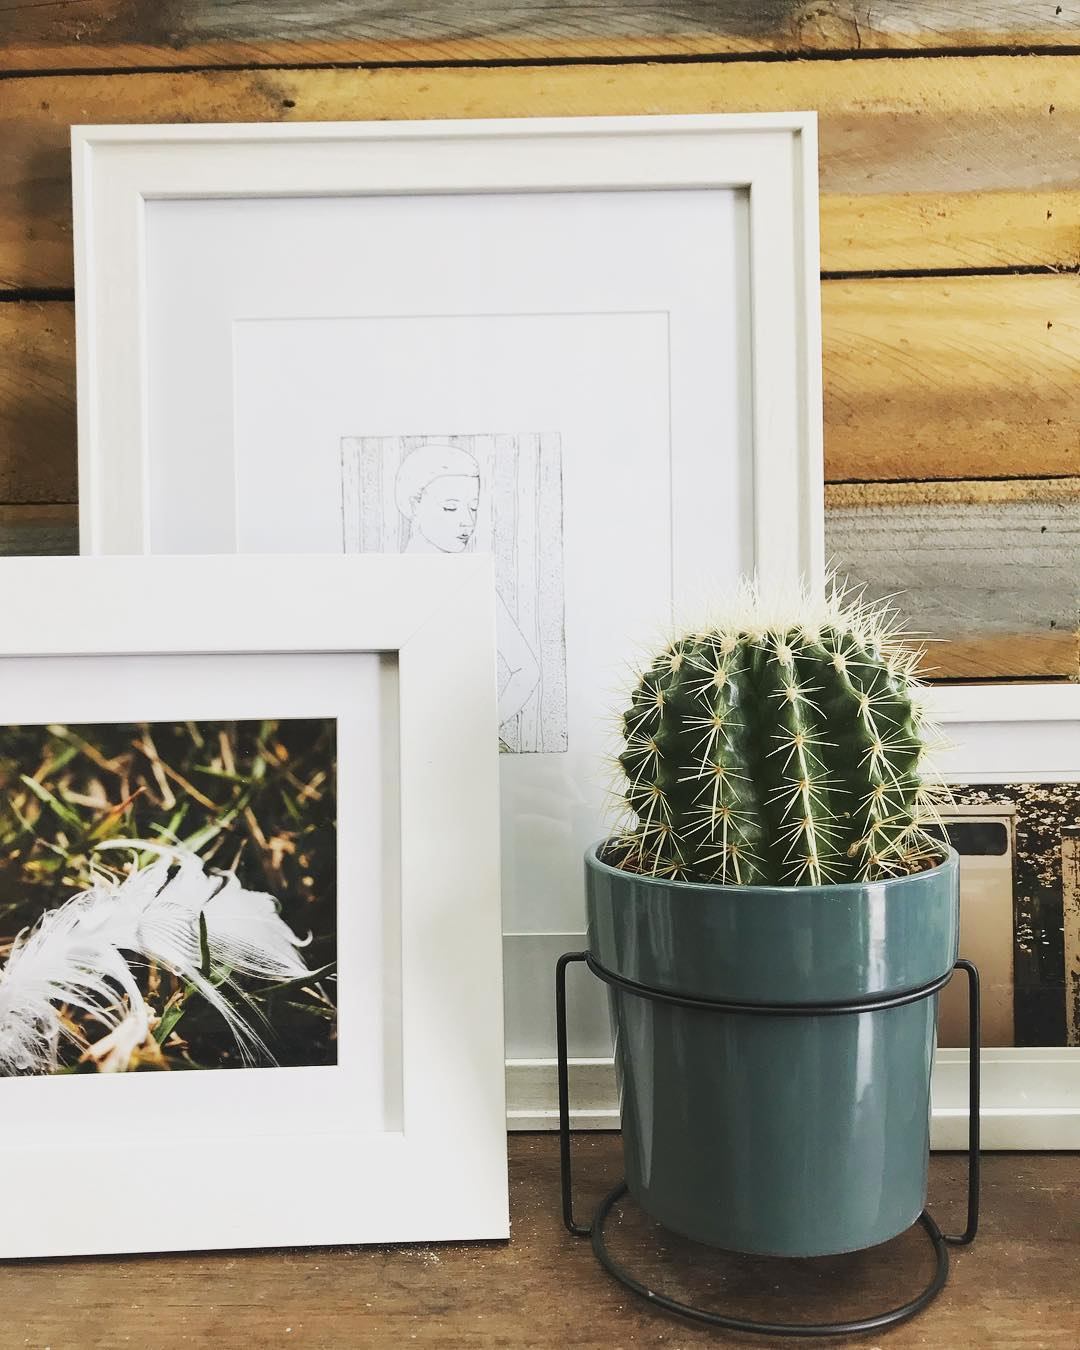 Golden Barrel Cactus and Picture Frames